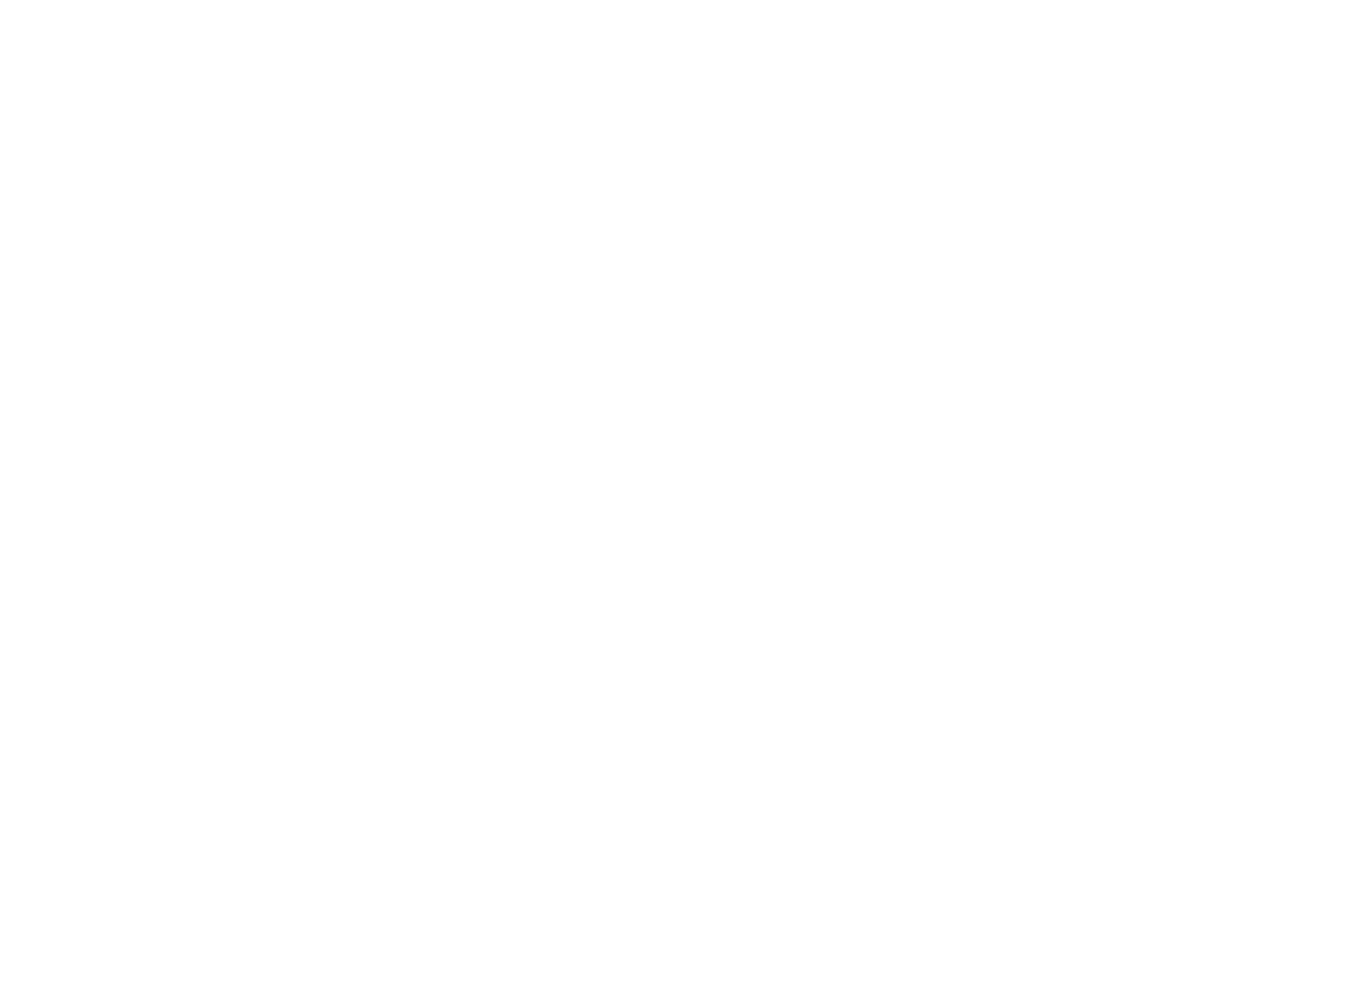 FUNDACION MADRE HERLINDA MOISES